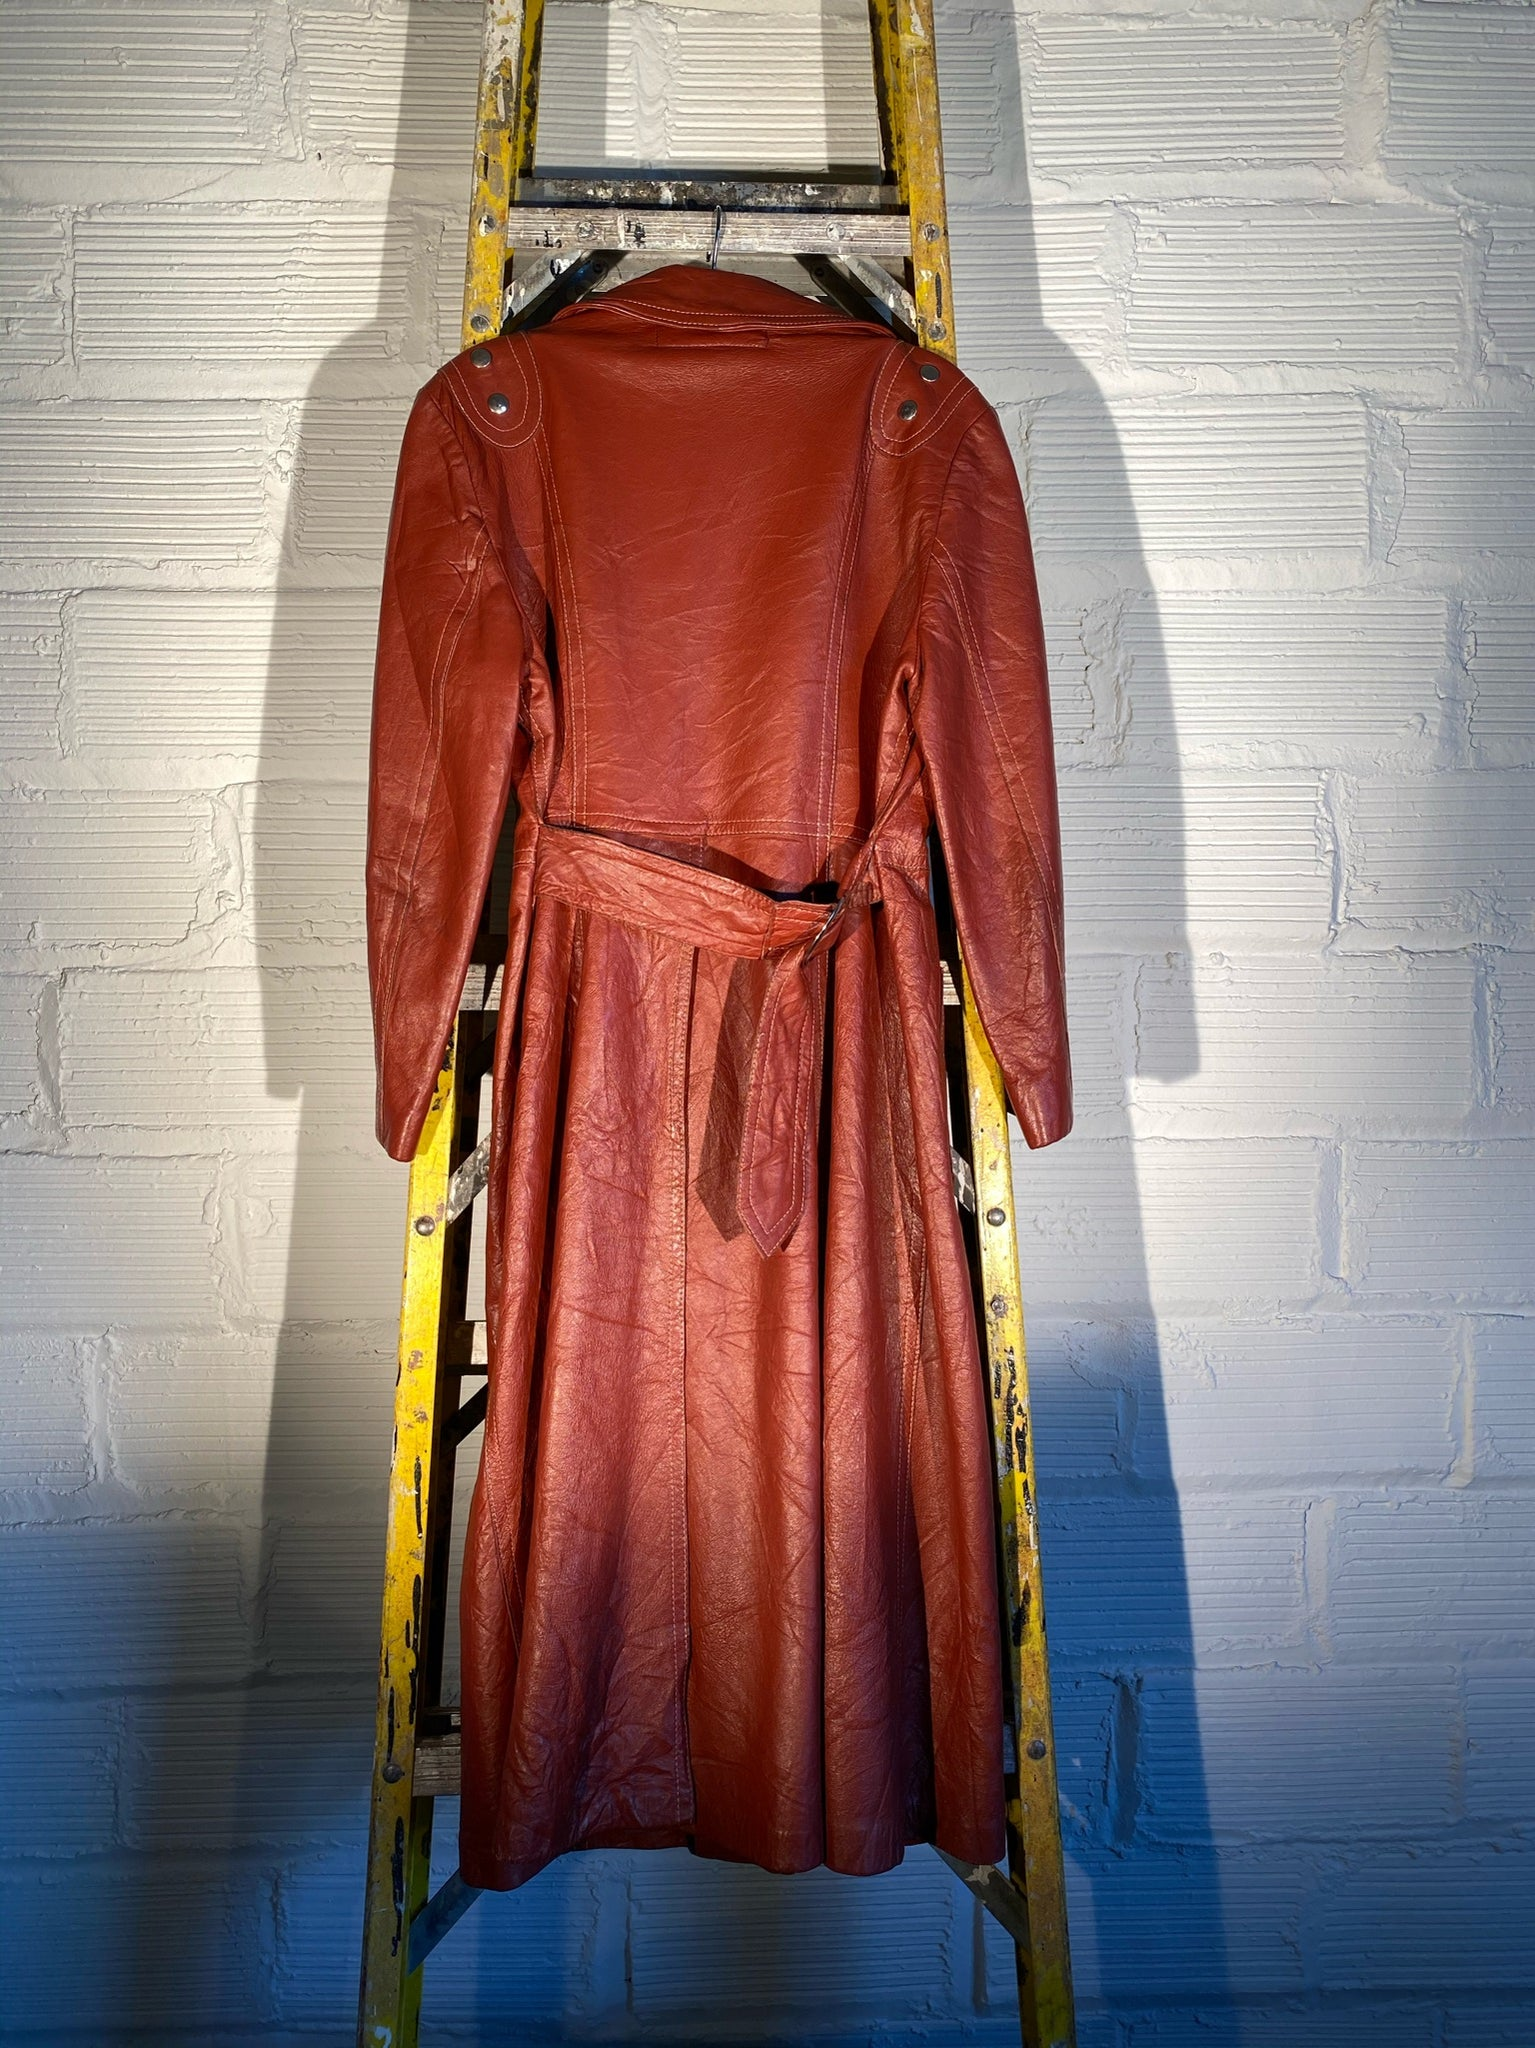 1/1 SMV BURNT RED LEATHER TRENCH COAT